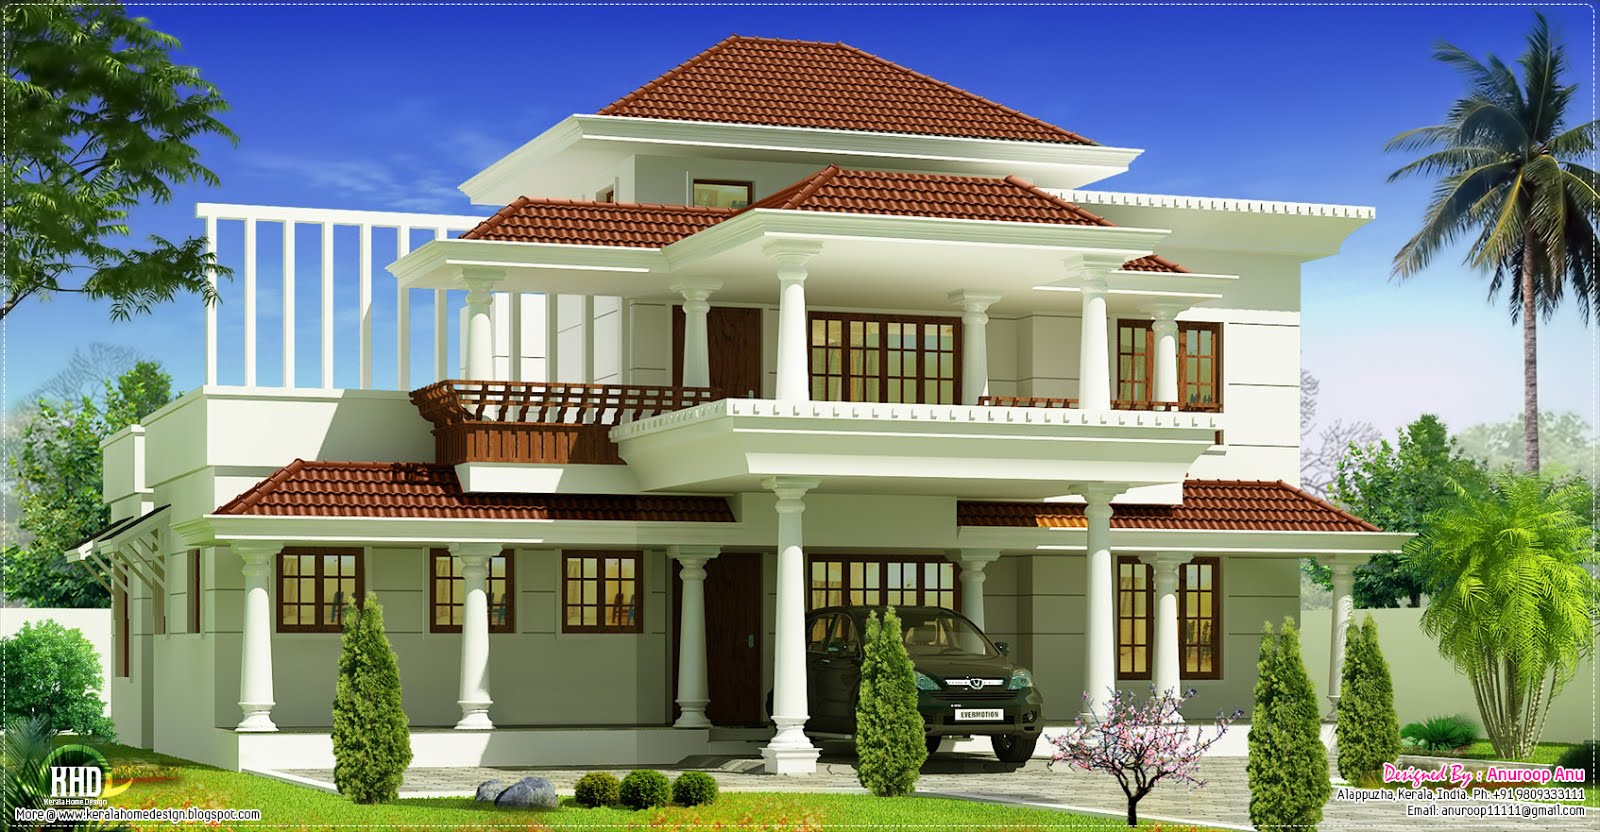 Kerala House Models Houses Plans Designs